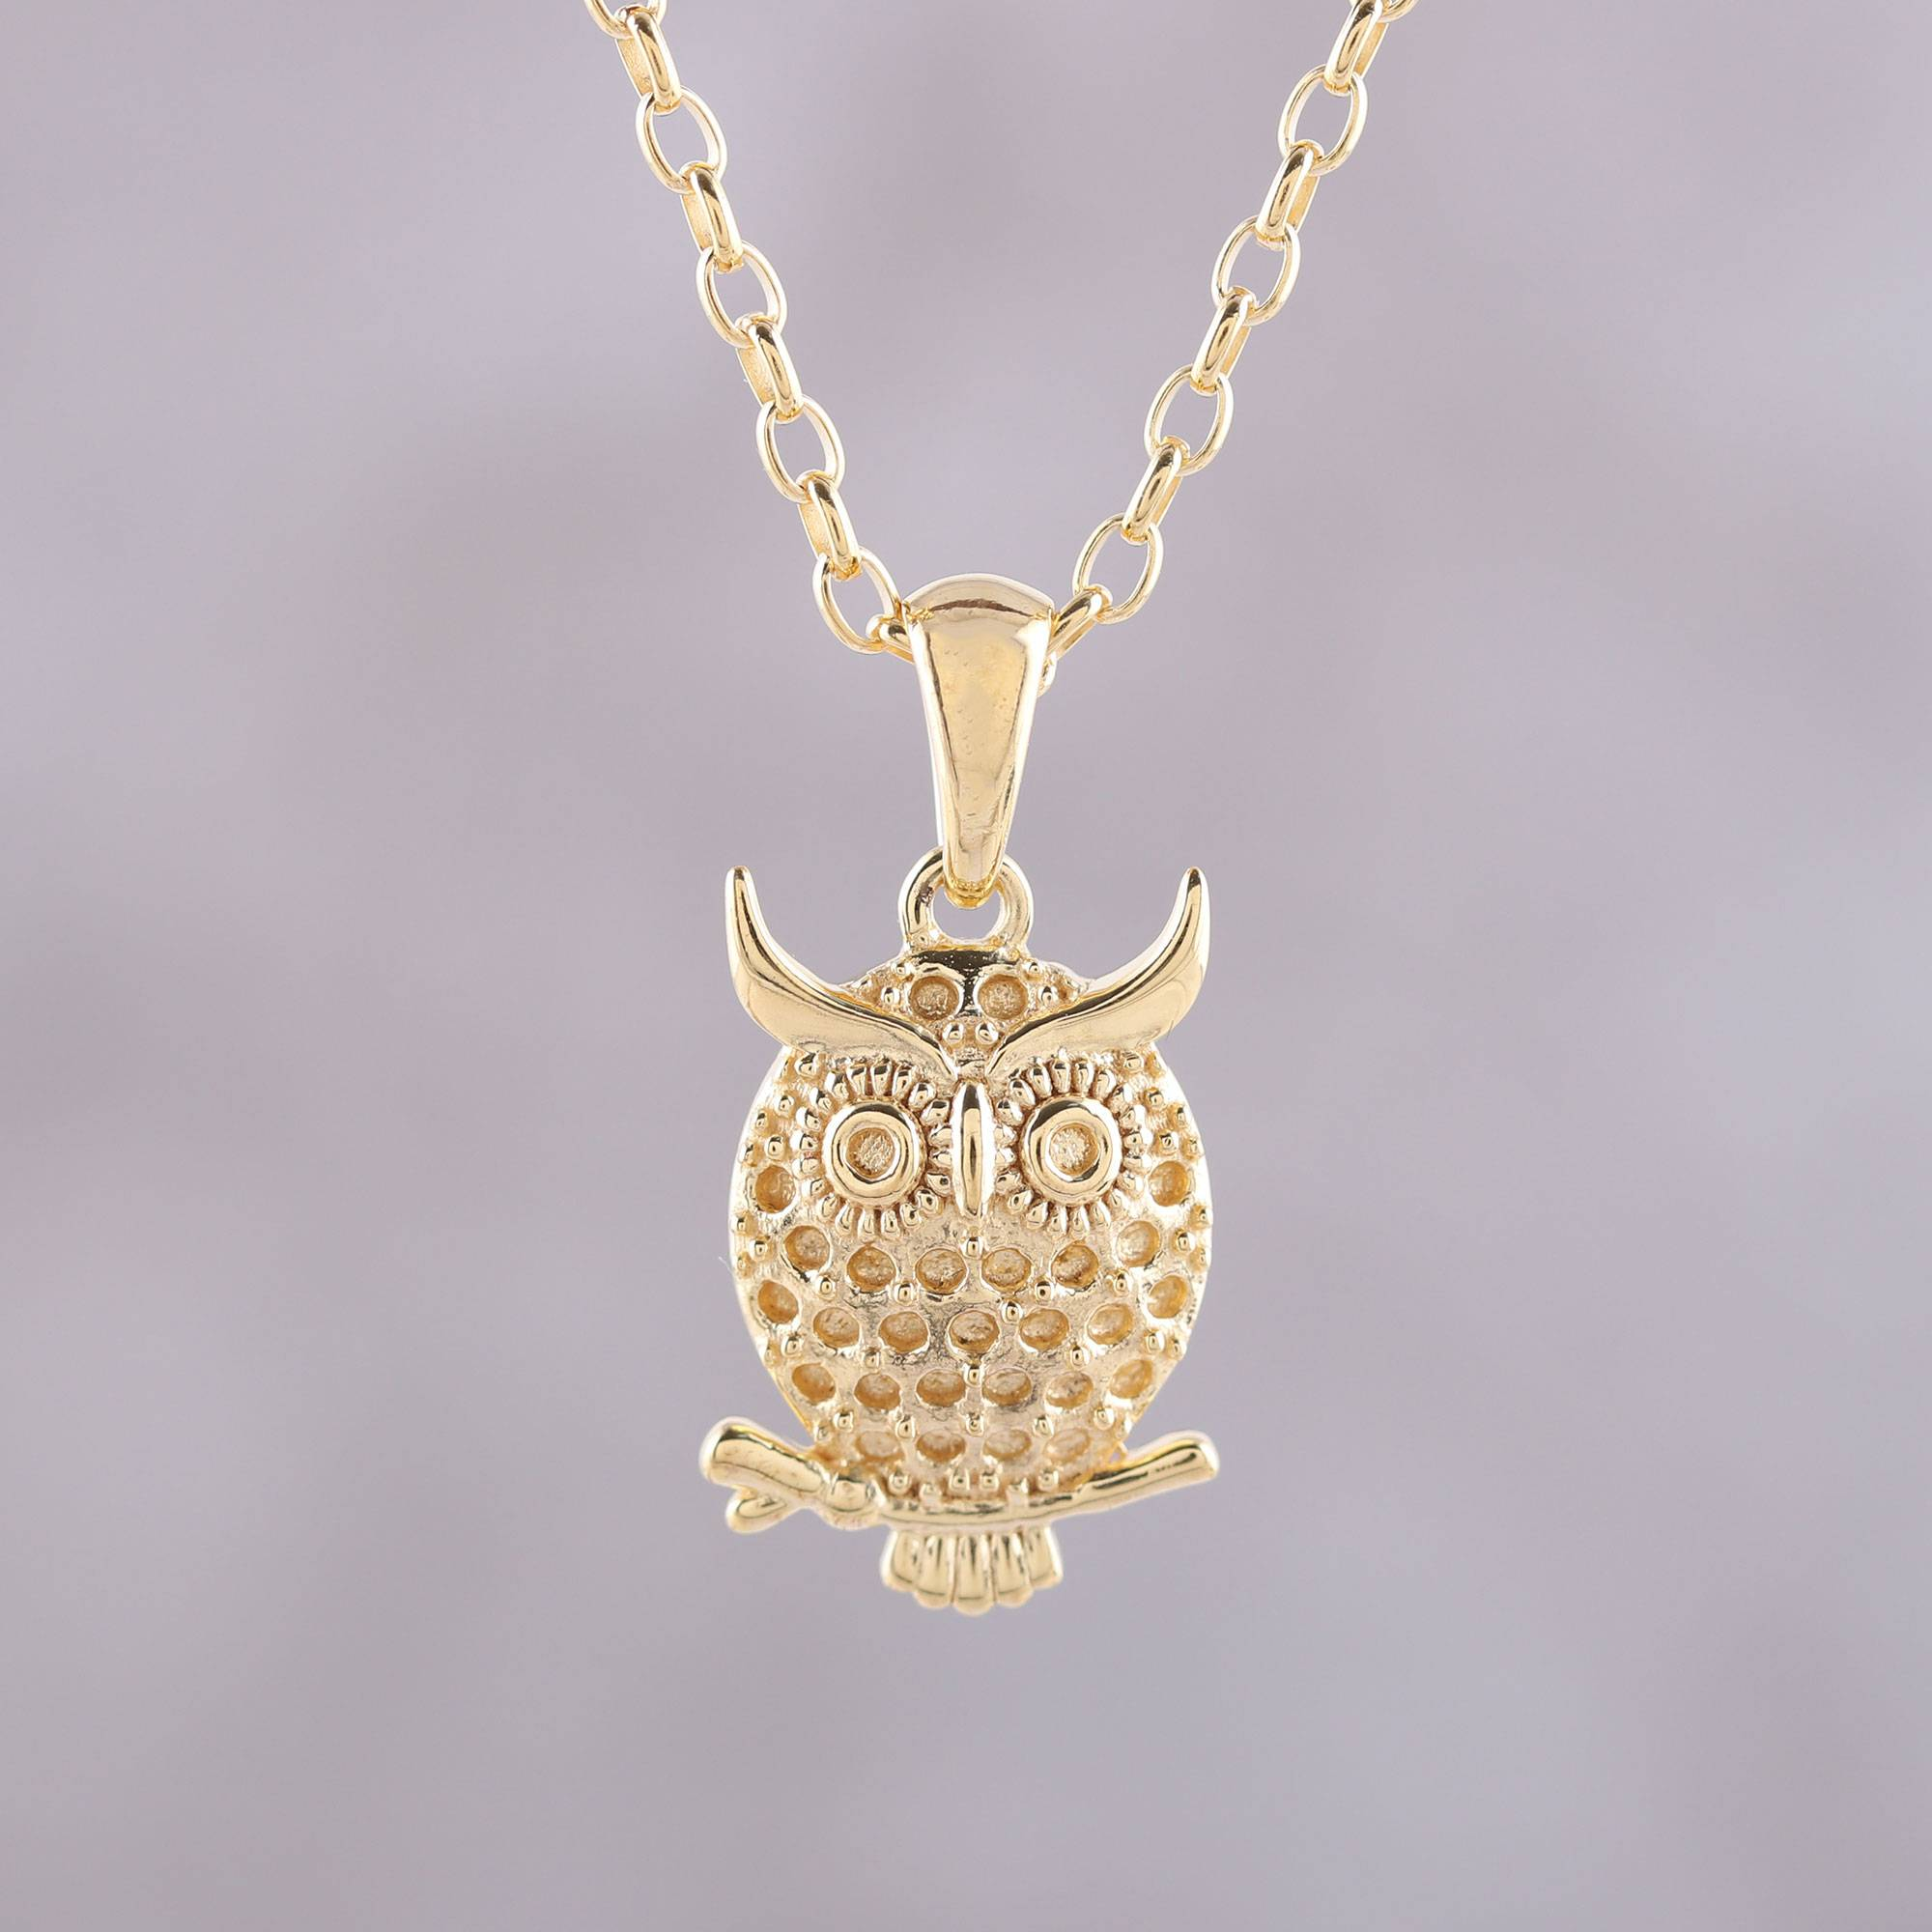 WOMEN/'S FASHION GOLDPLATED OWL WITH RHINESTONE ACCENTS CHOKER NECKLACE NWT